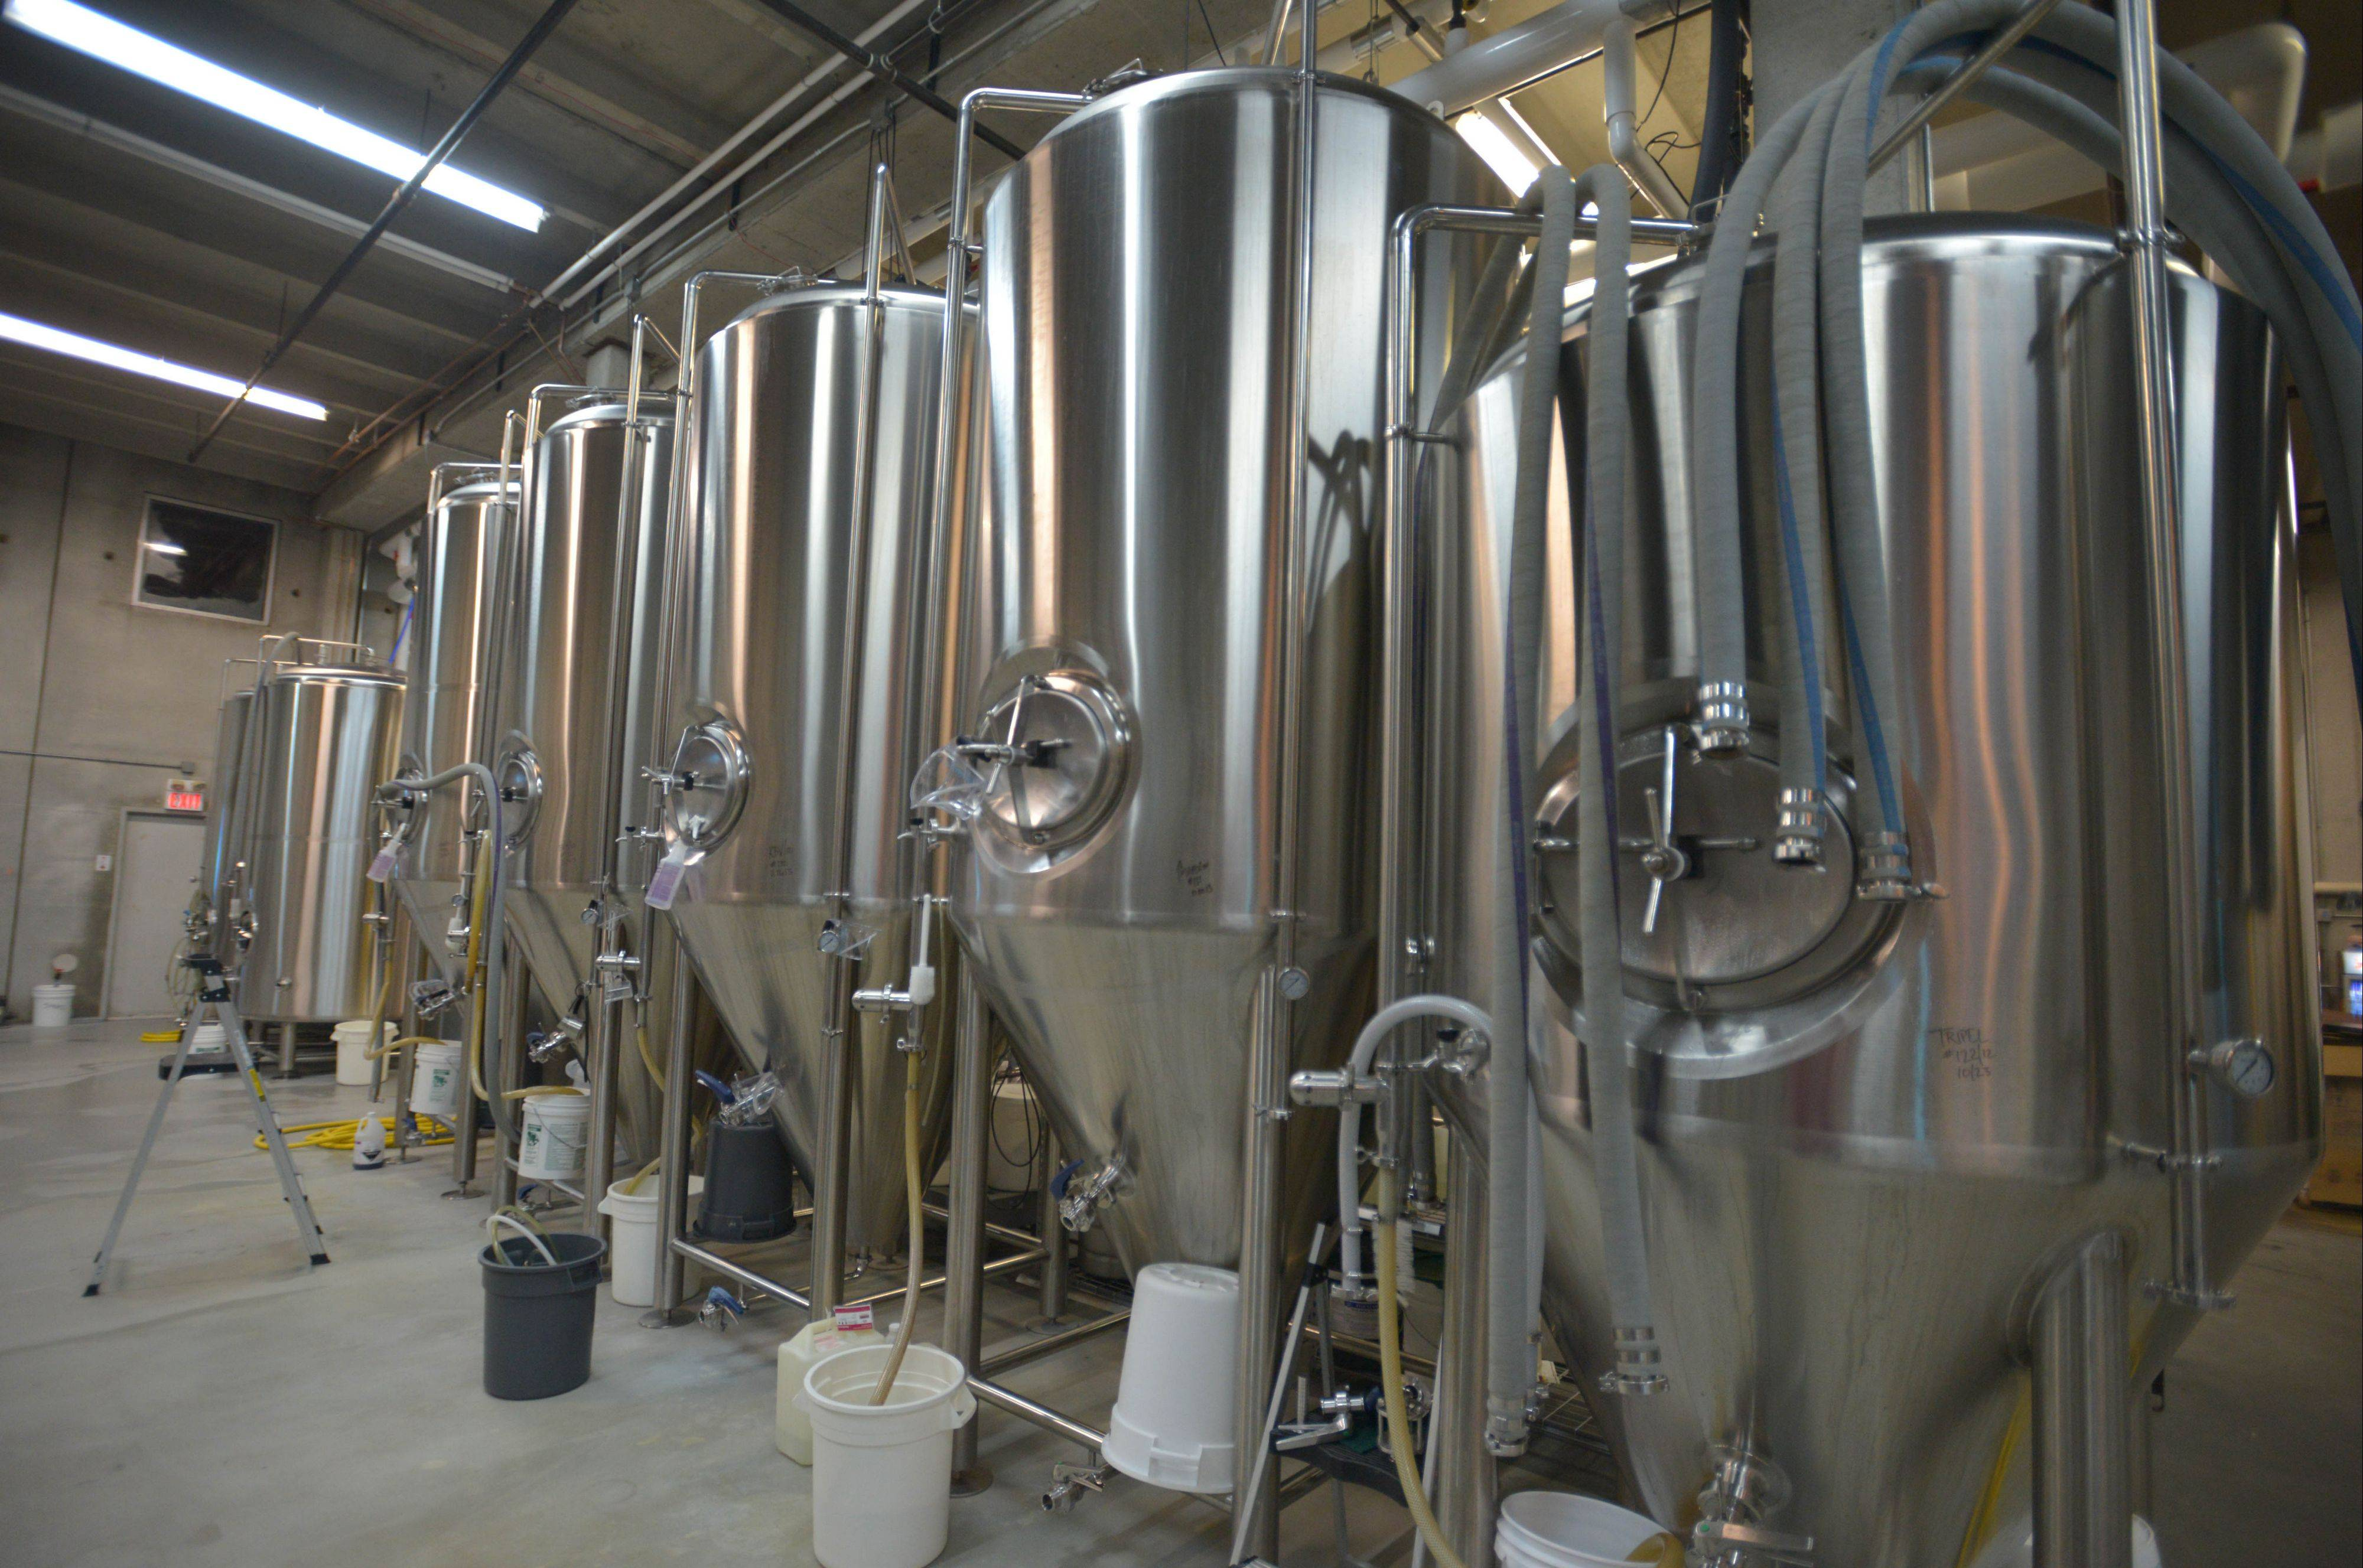 Solemn Oath brews its beers in Naperville.